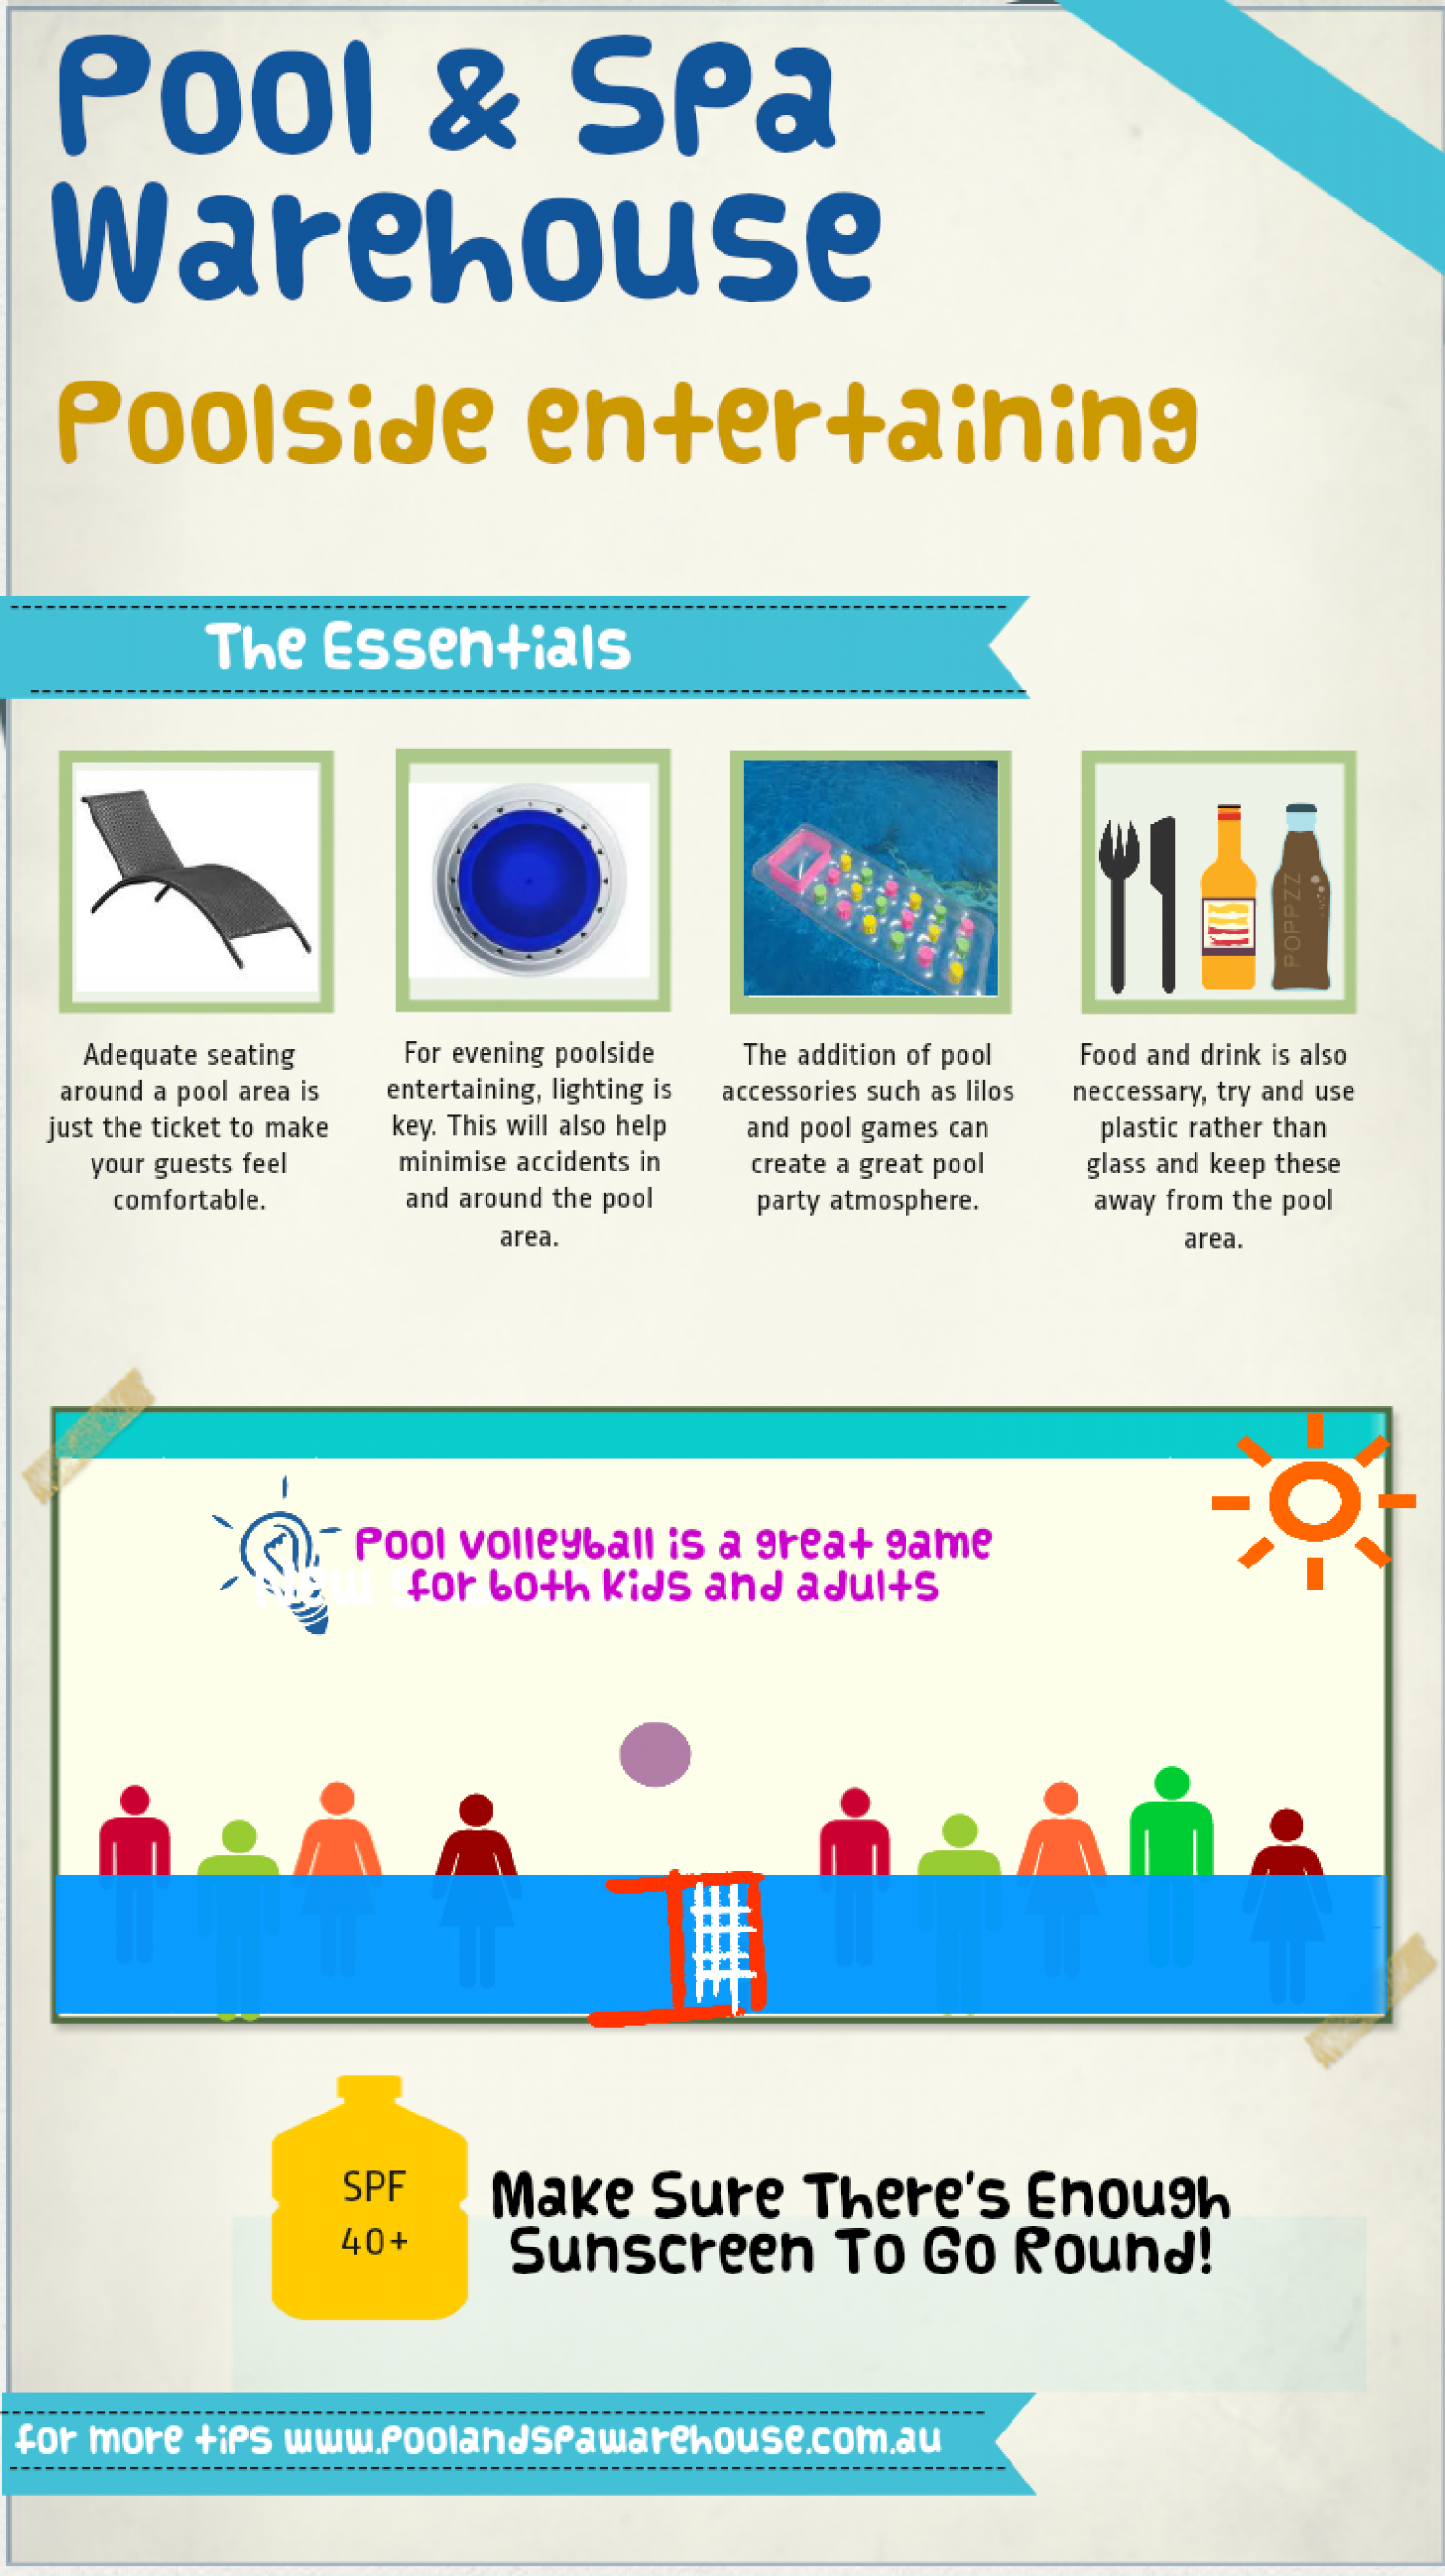 Poolside entertaining tips Infographic